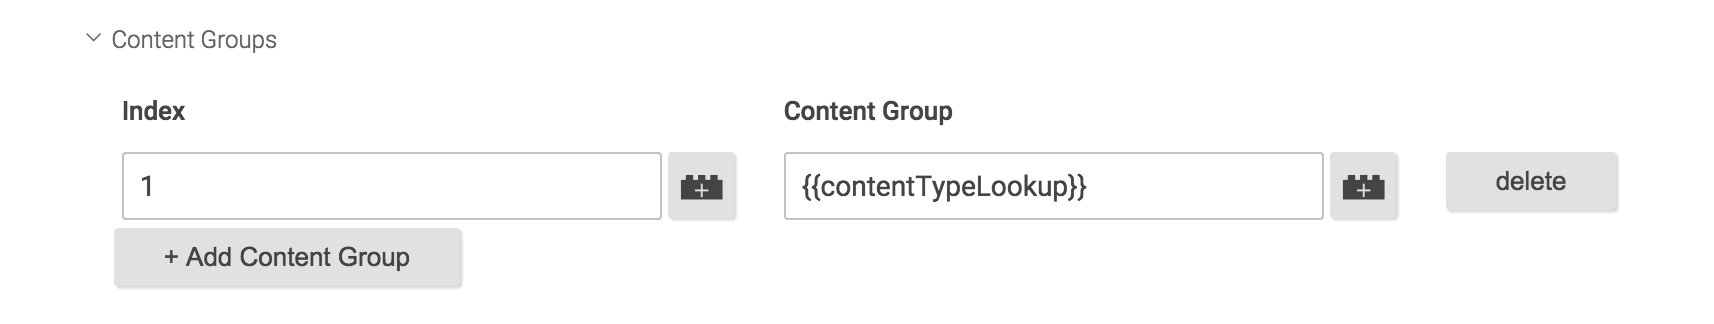 Google Tag Manager - Setting a Content Grouping